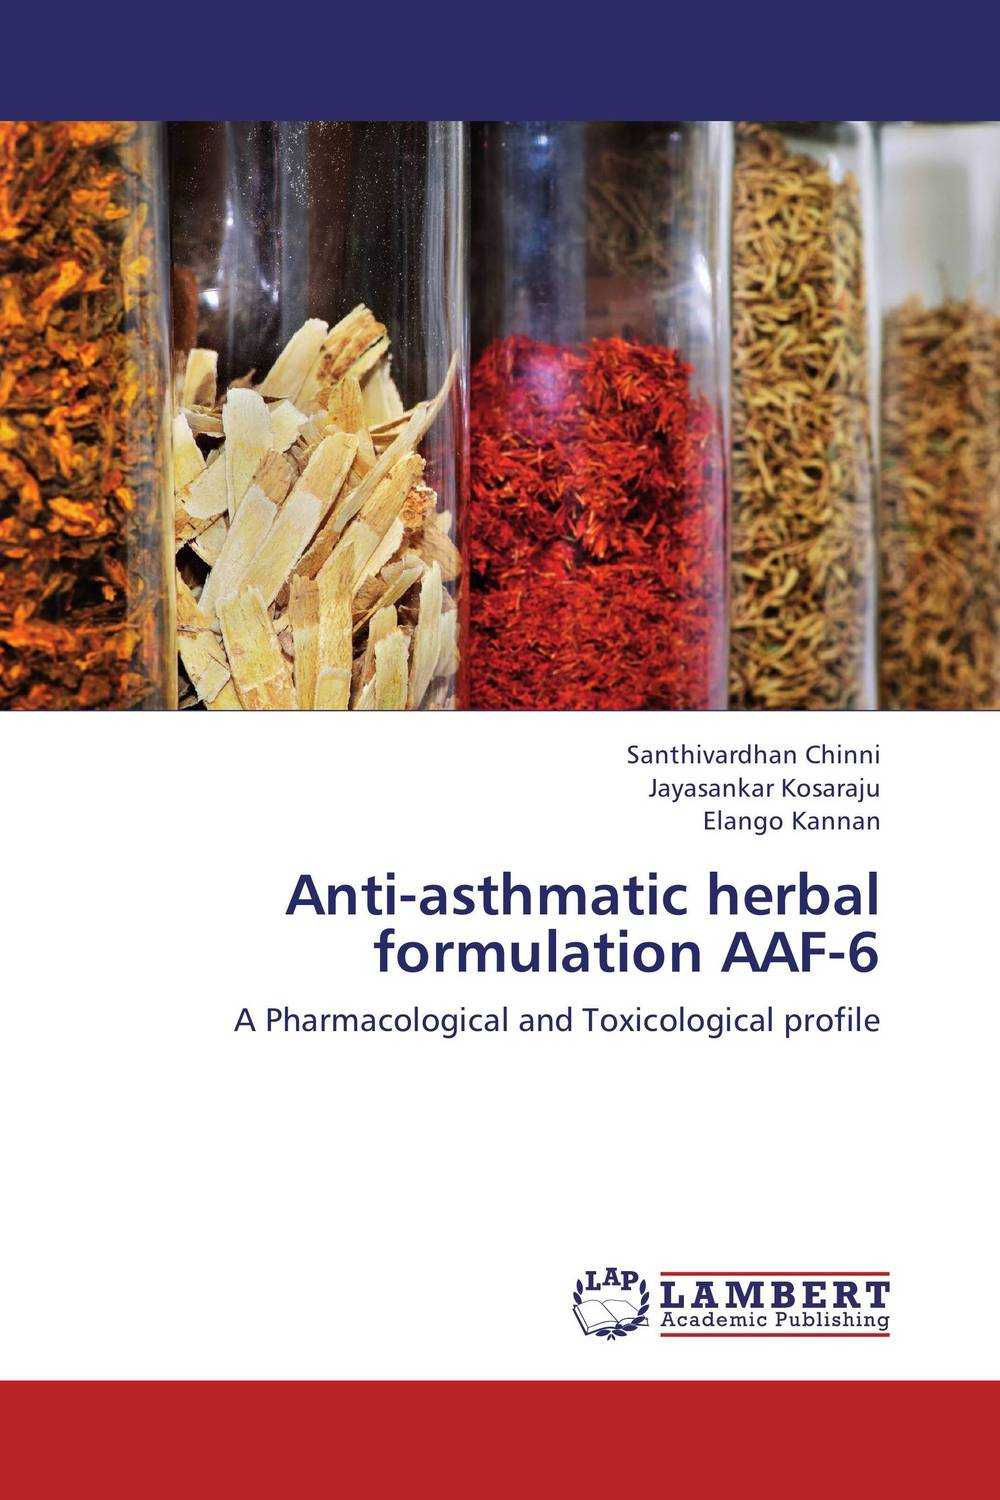 Anti-asthmatic herbal formulation AAF-6 pharmacological and toxicological investigations of saraca indica